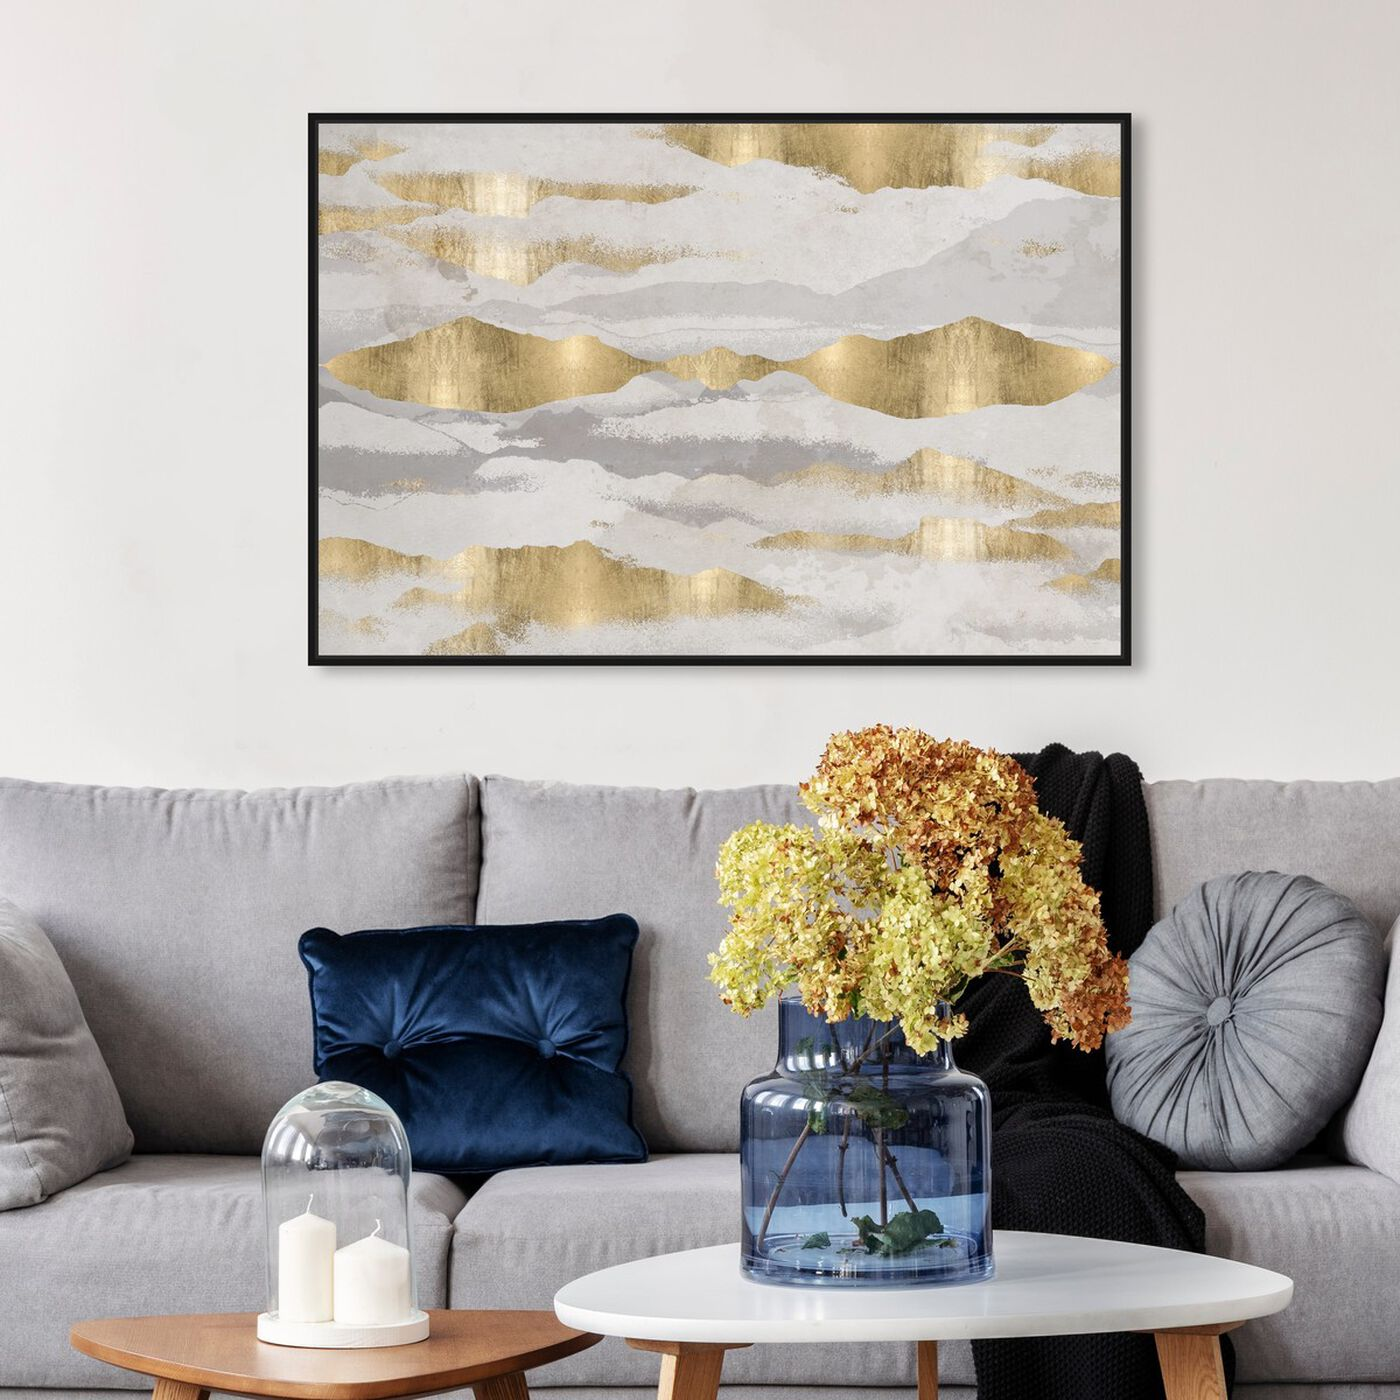 Hanging view of Mountains Of Life featuring abstract and textures art.